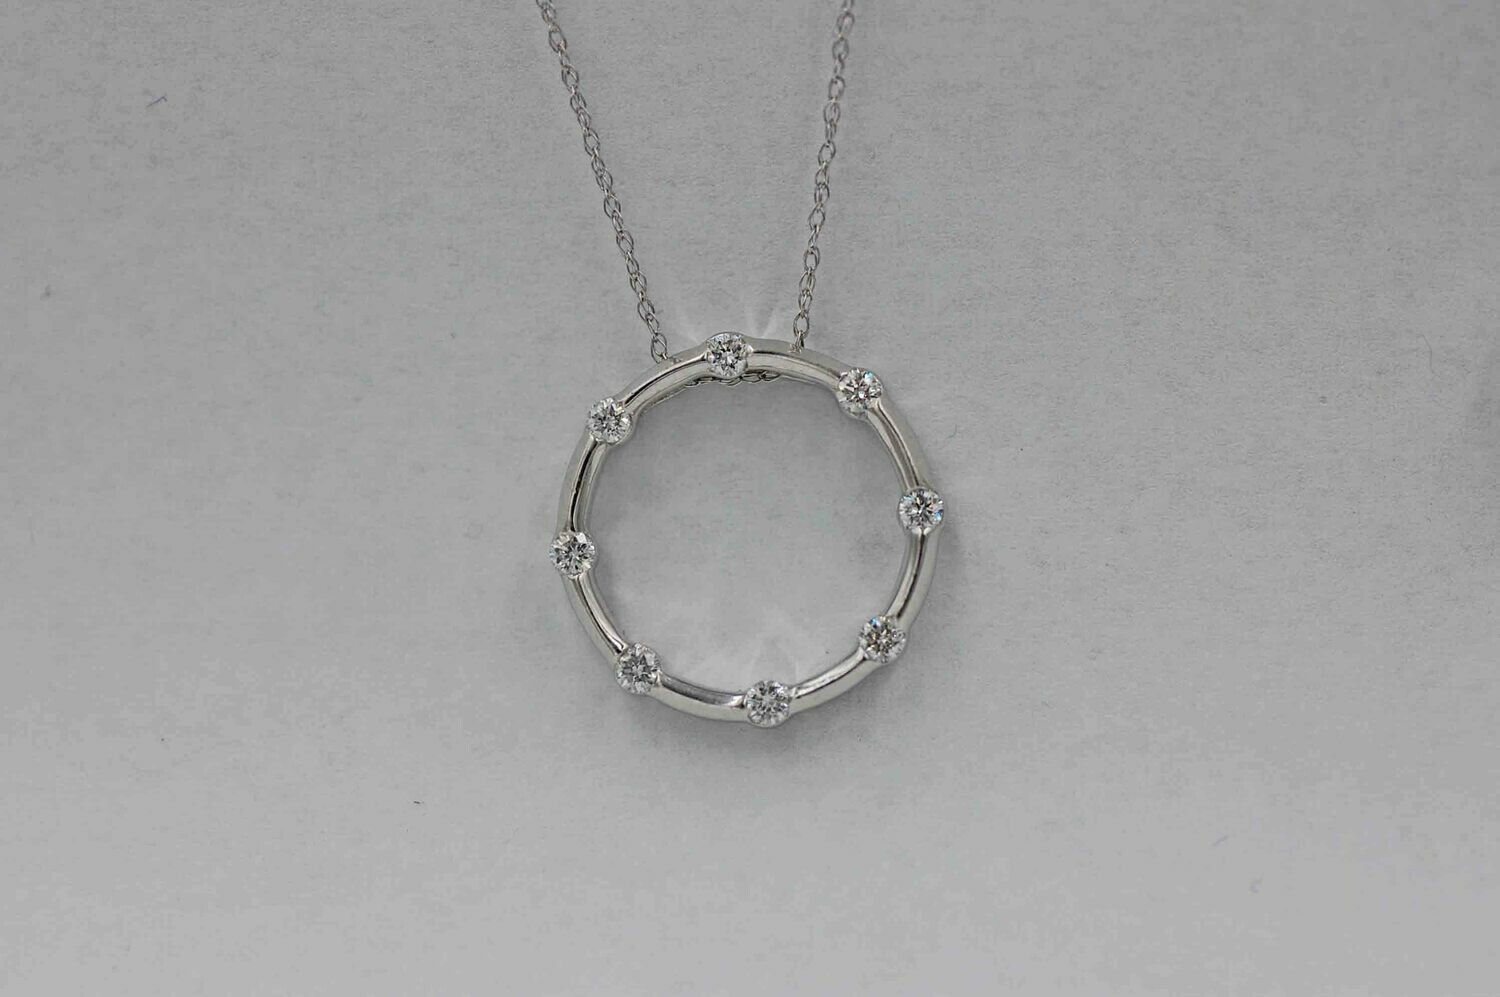 14kw wg circle pendant w/ 8 diamonds .50cttw- 18""